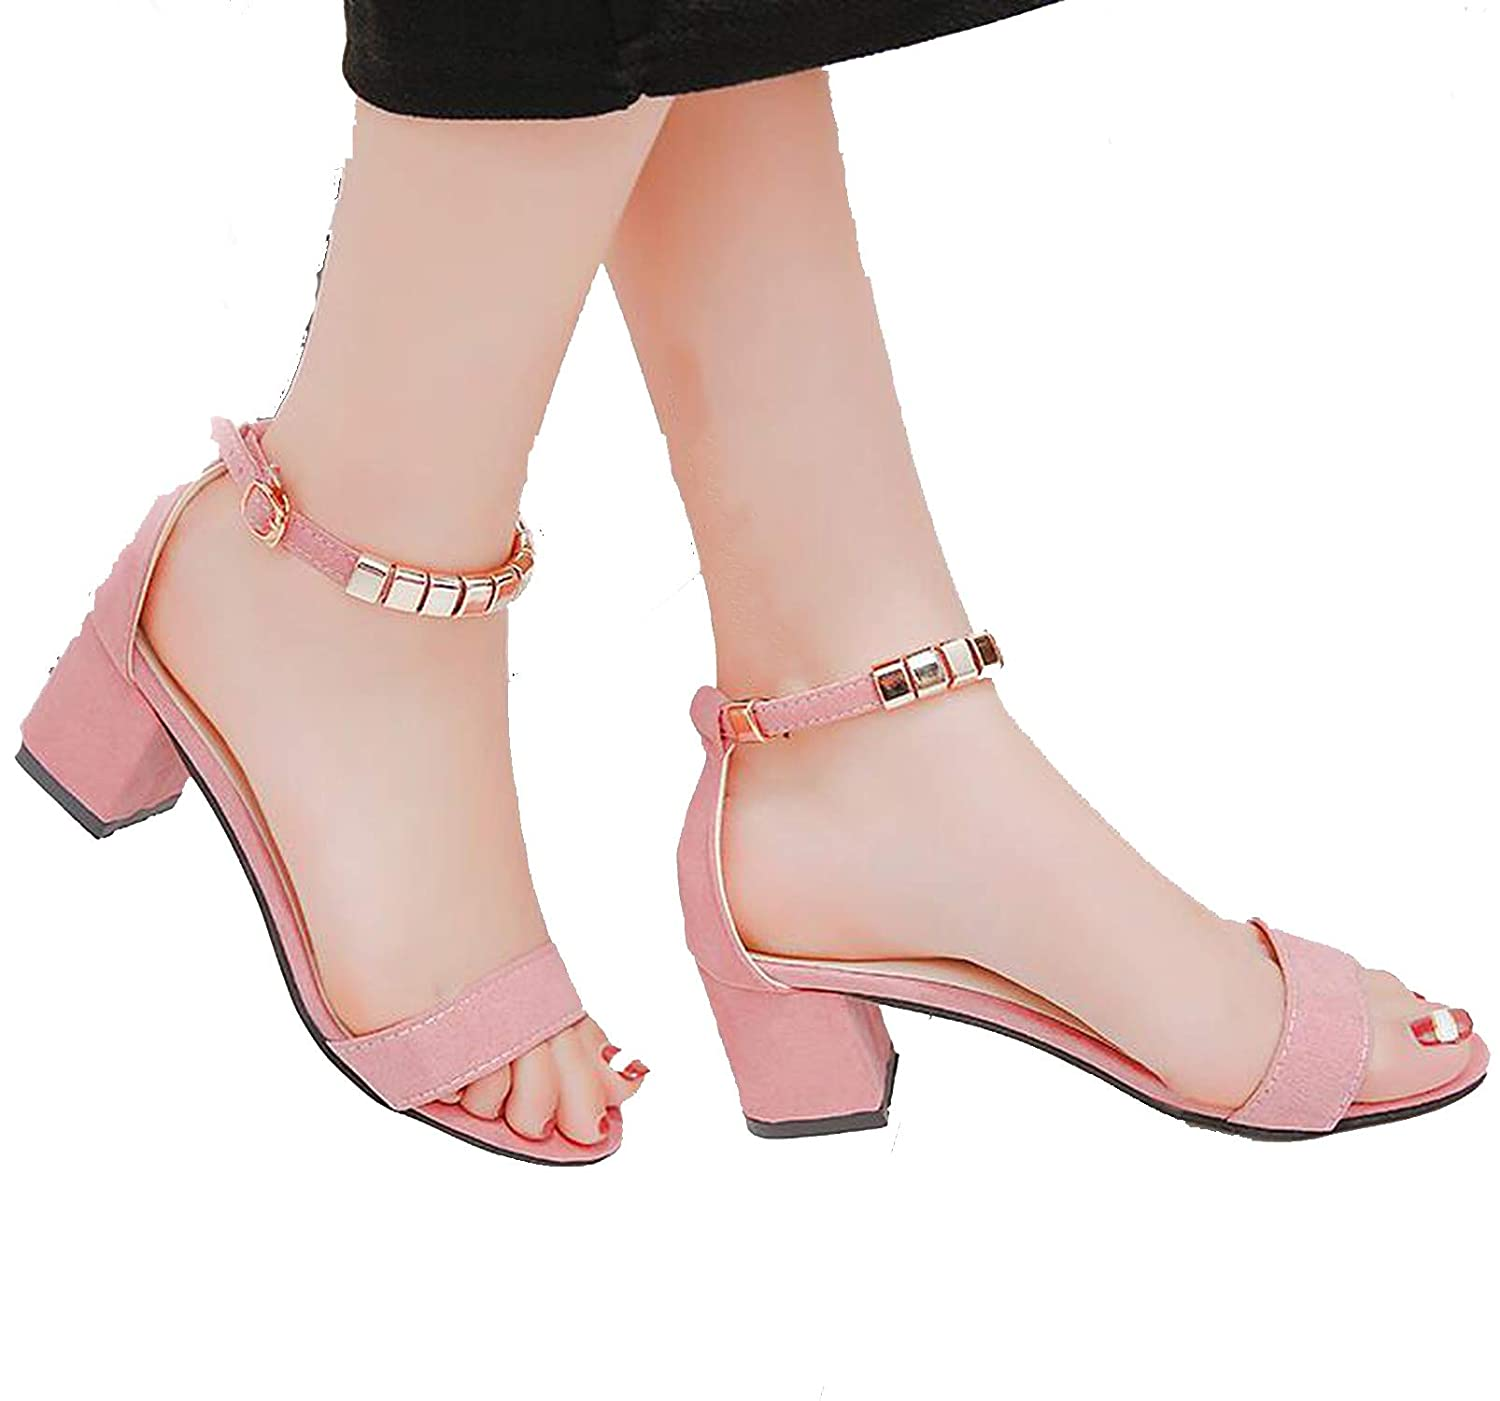 Details about Metal String Bead Summer Women Sandals Open Toe shoes Square Heel Women Shoes